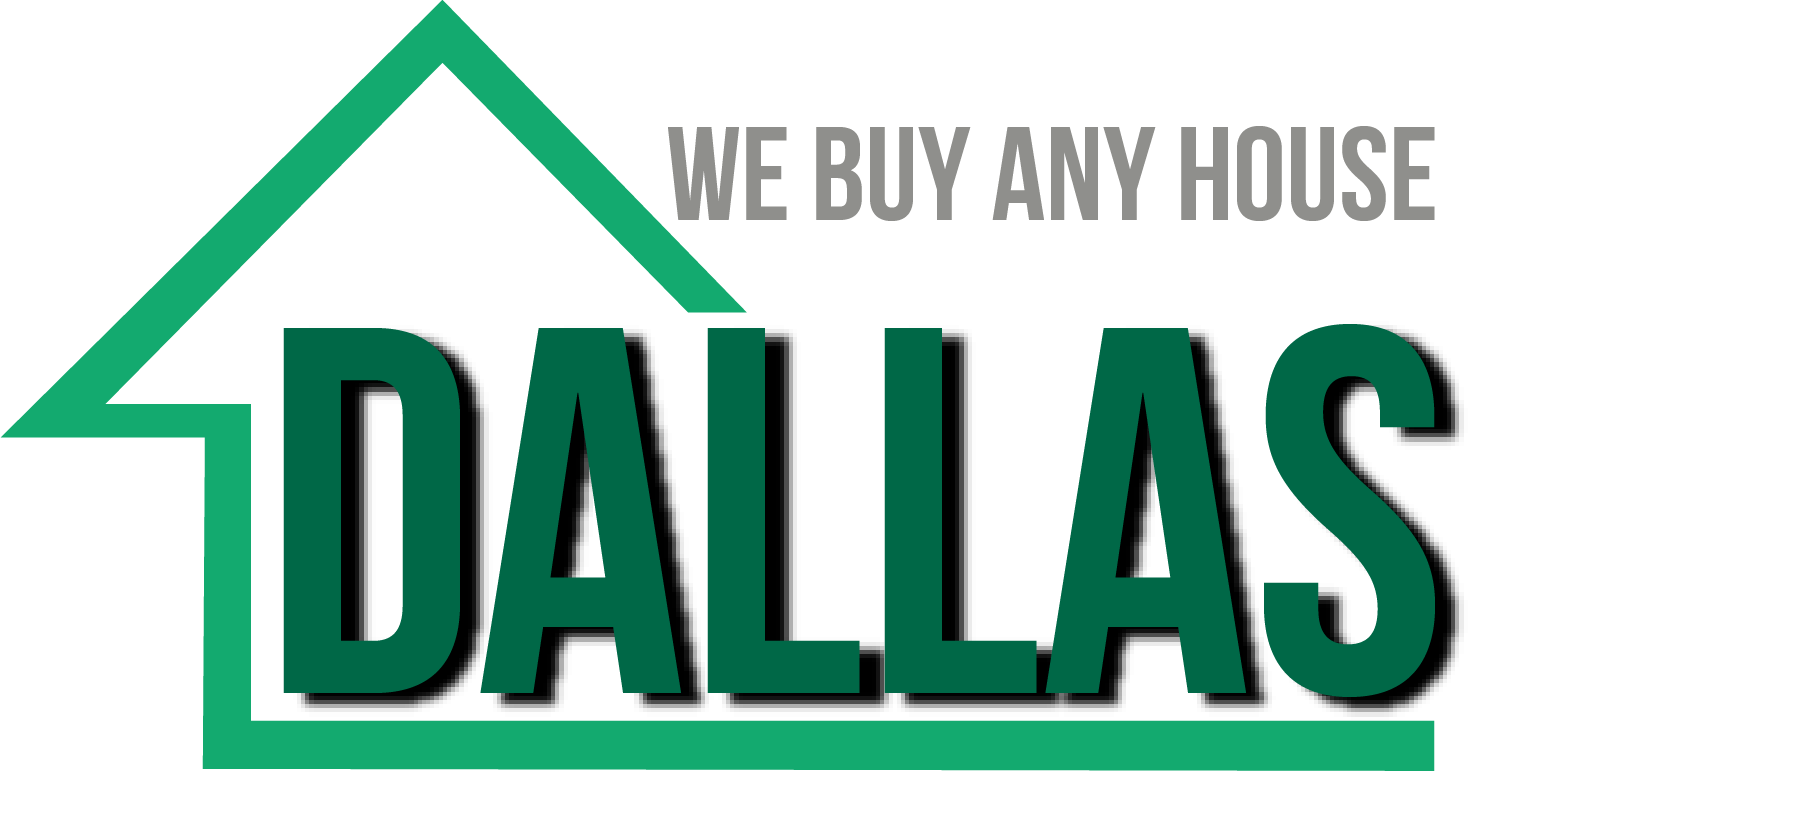 We Buy Any House Dallas  logo